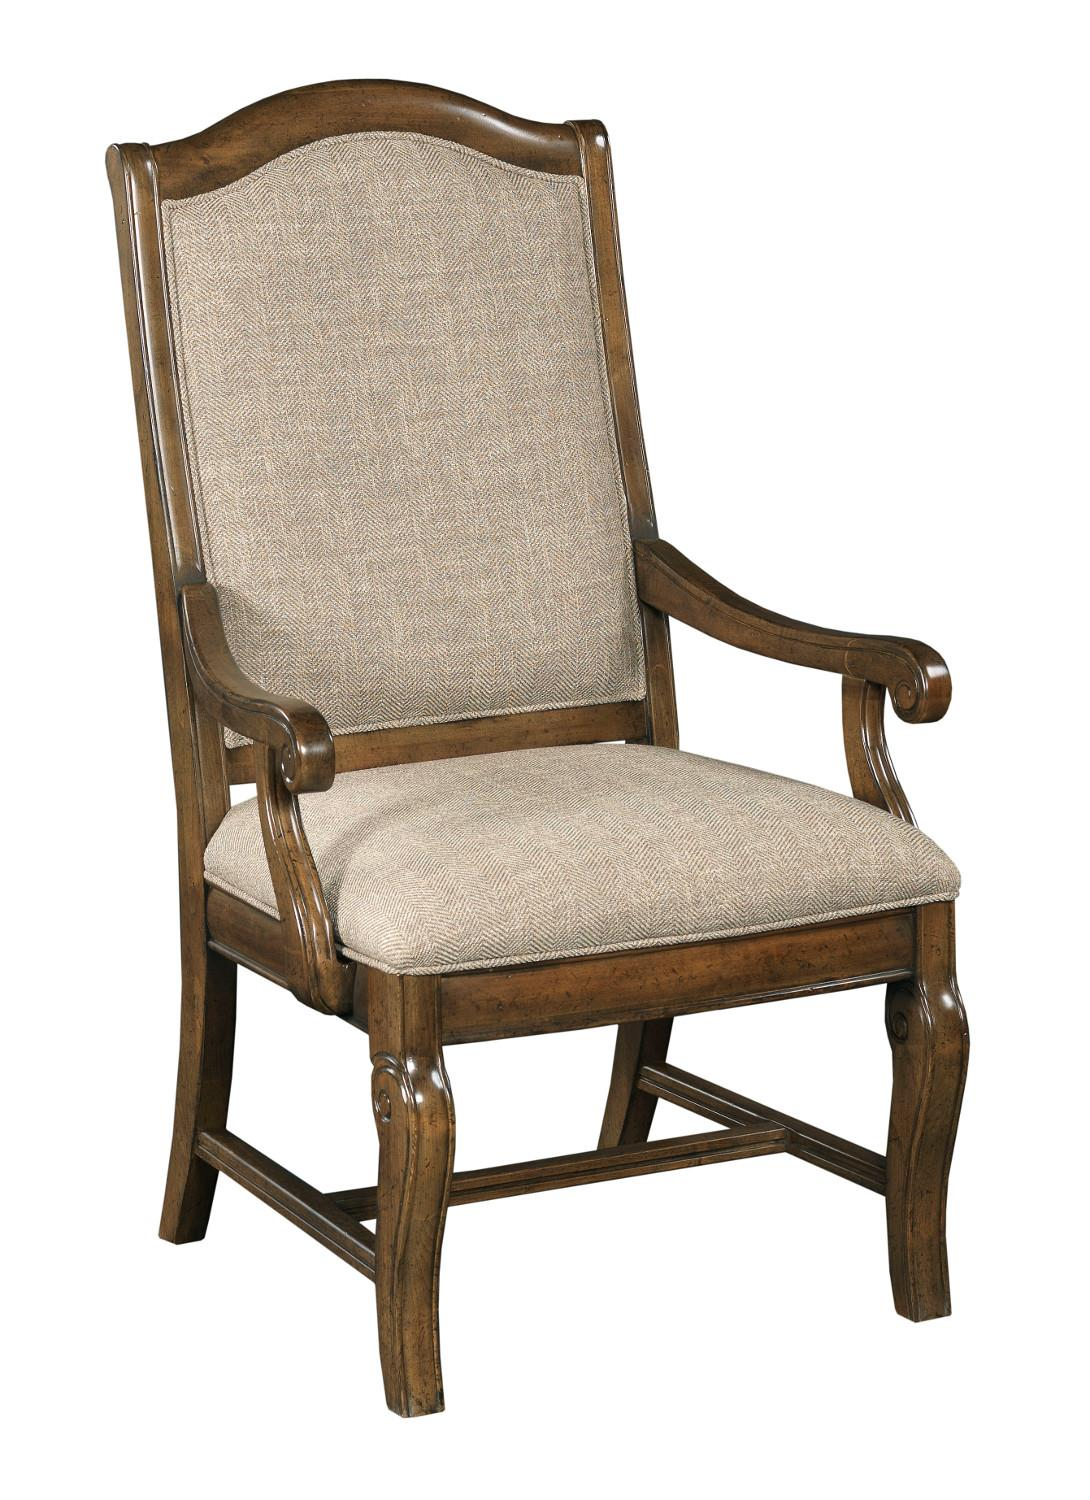 Portolone Upholstered Arm Chair by Kincaid Furniture at Johnny Janosik